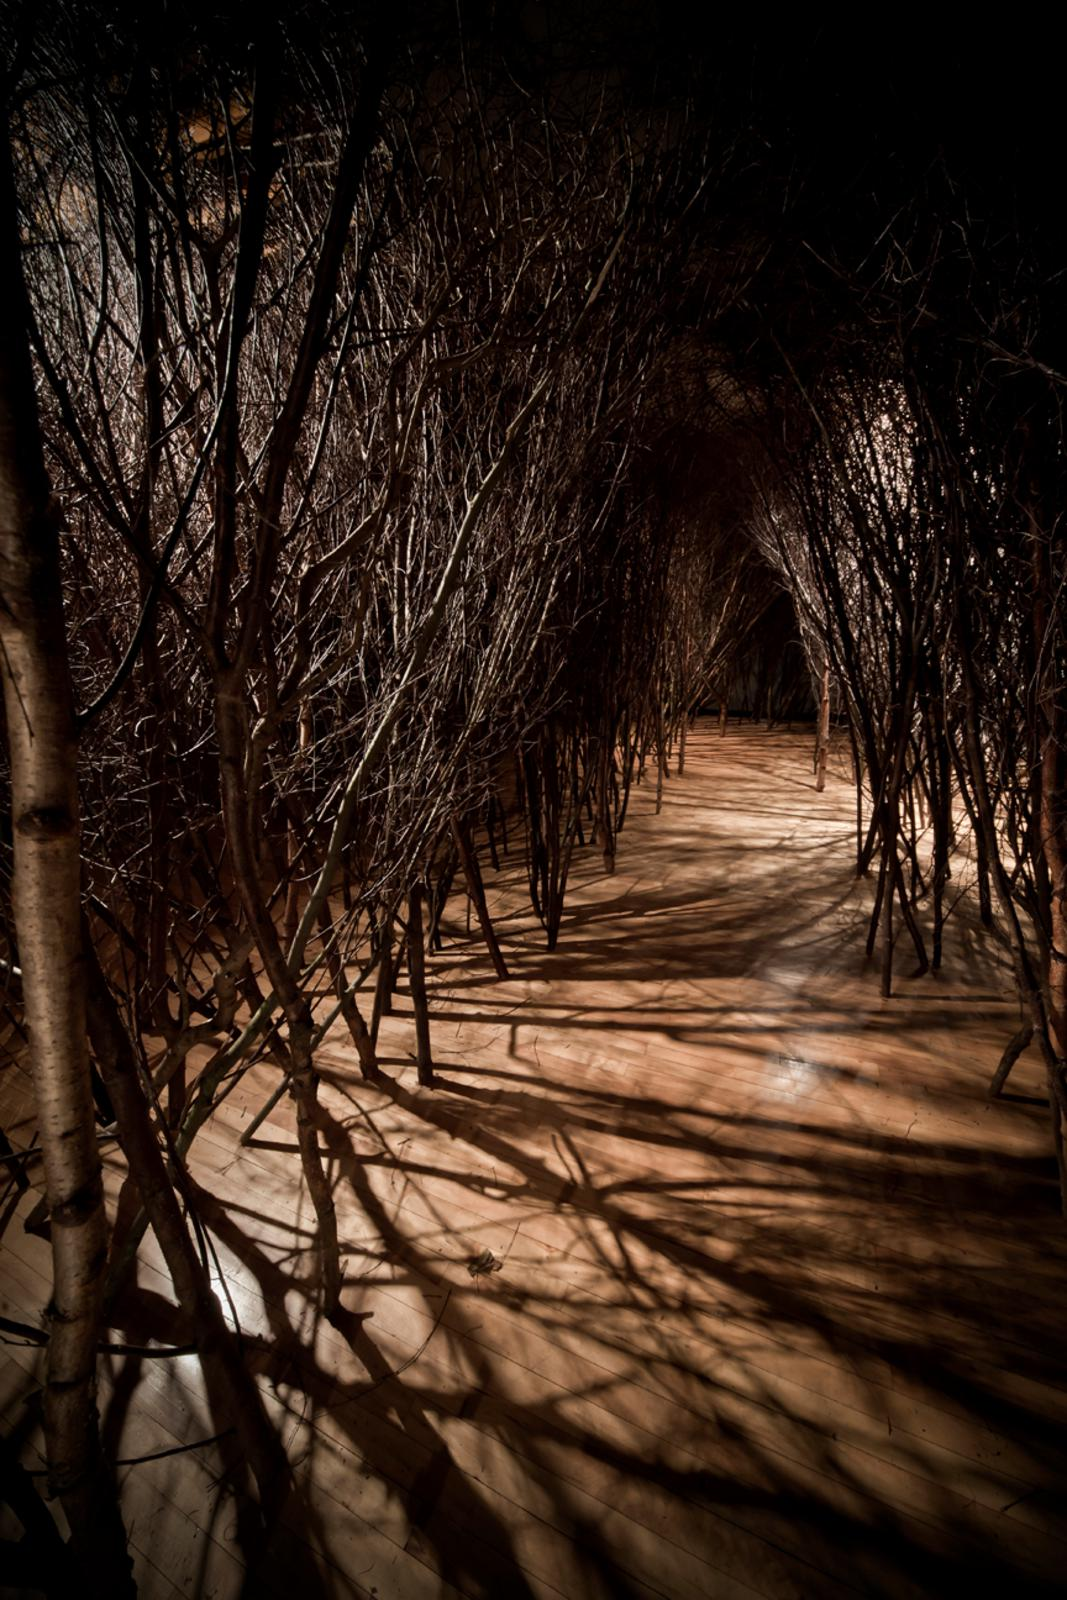 The forked forest path • Artwork • Studio Olafur Eliasson